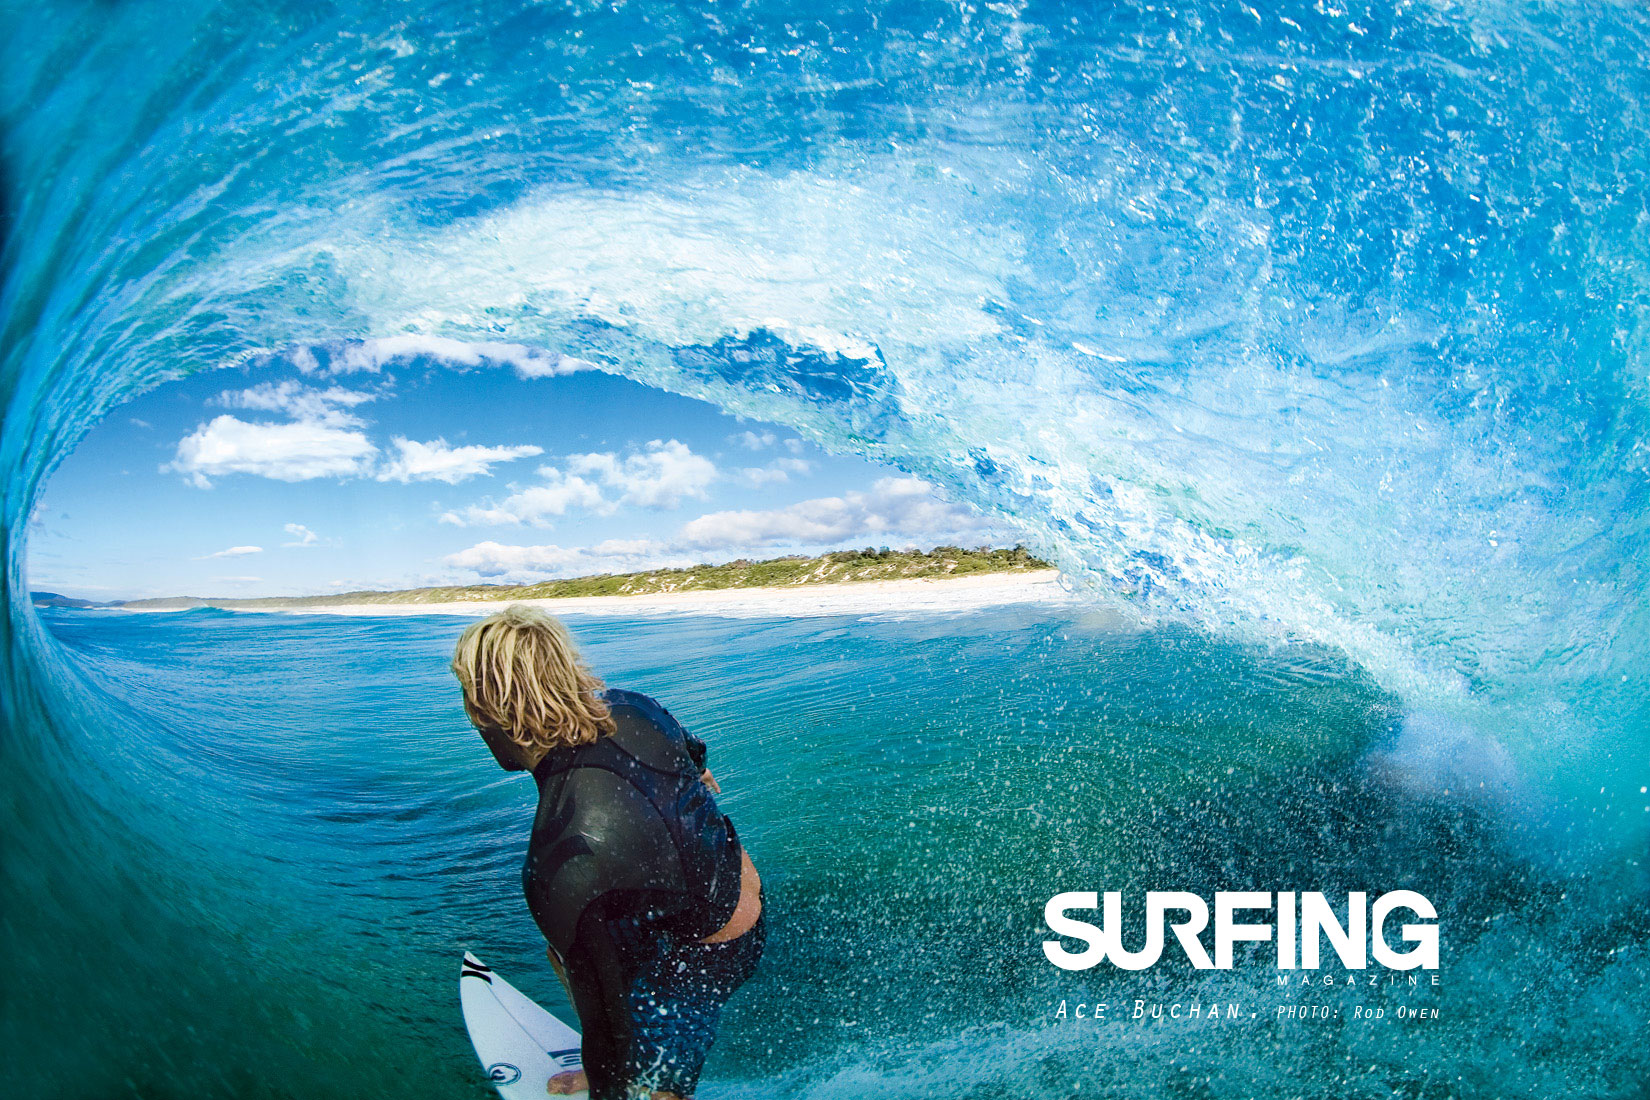 July Issue 2011 Wallpaper SURFING Magazine 1650x1100